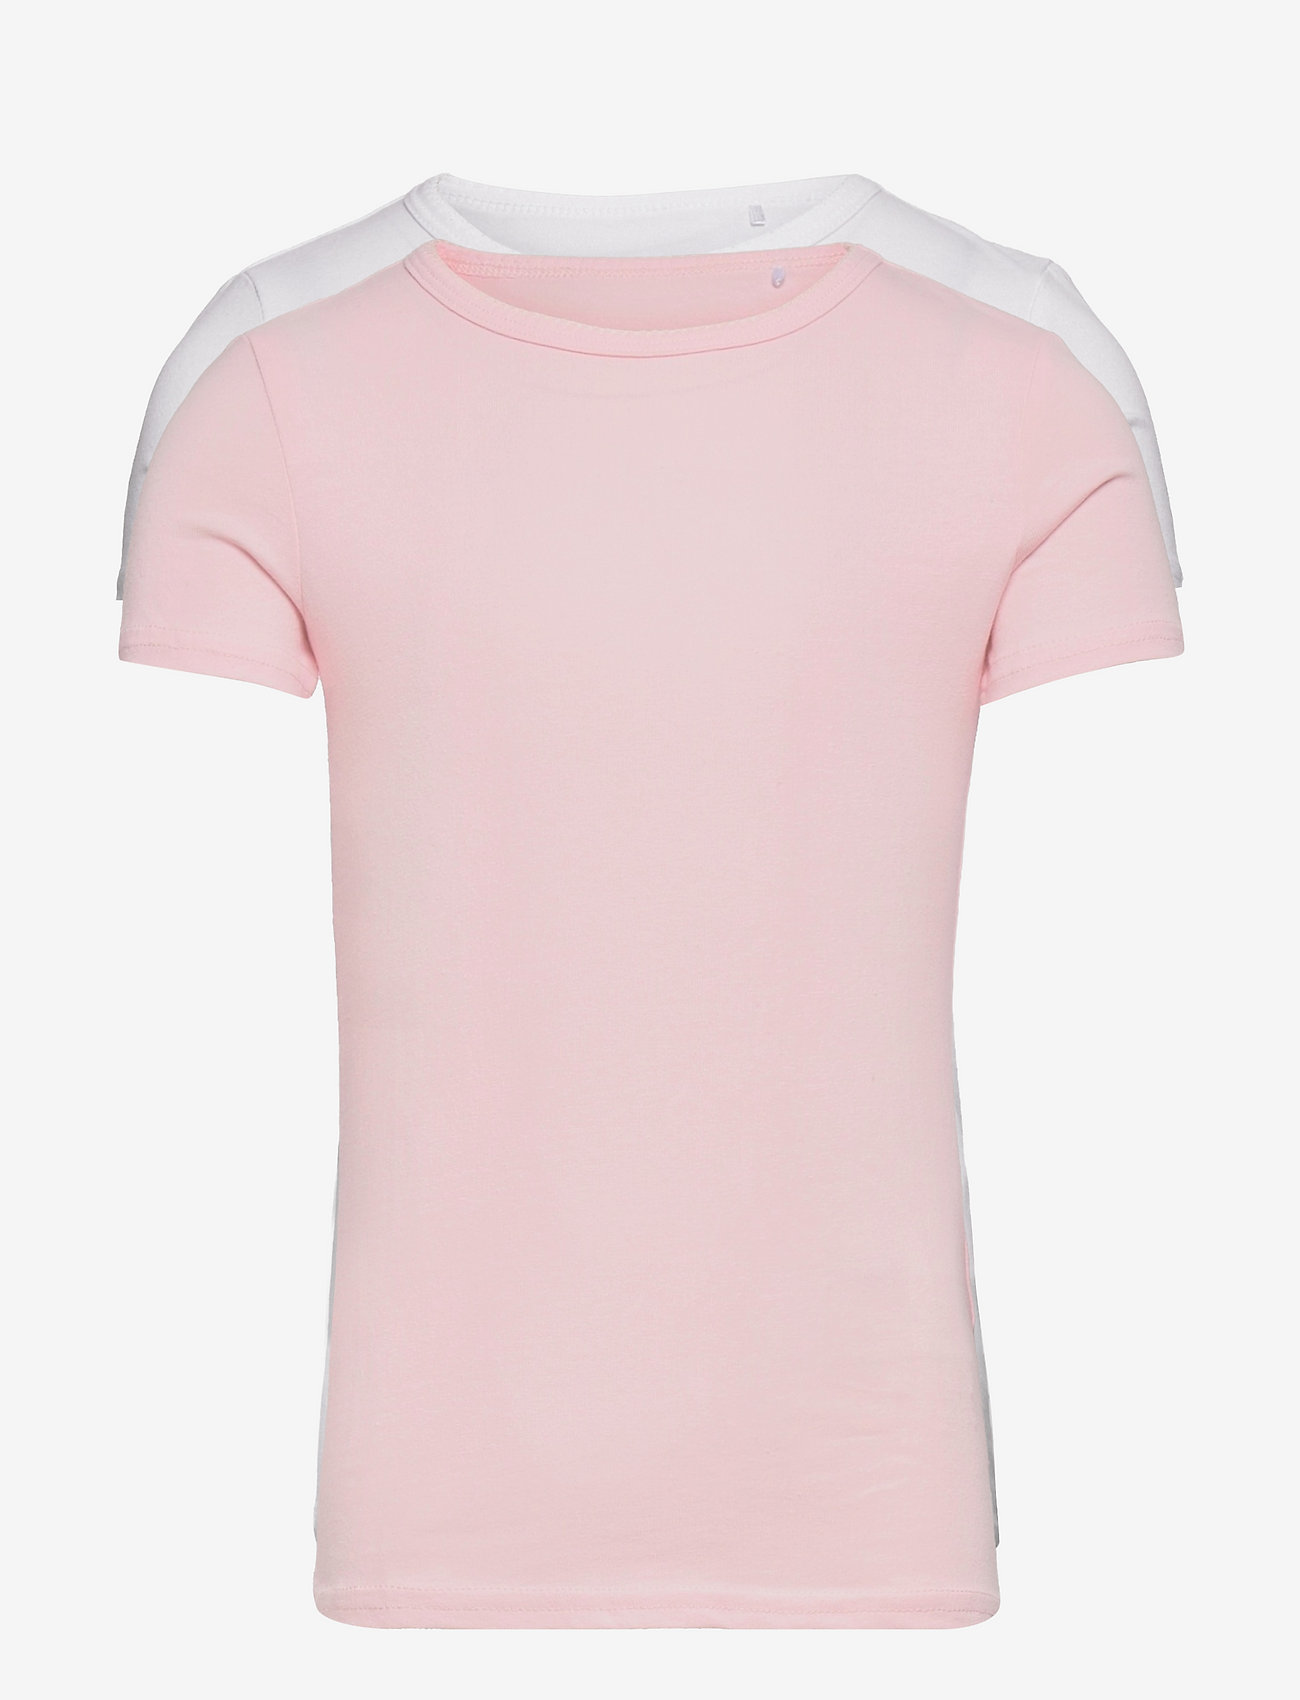 name it - NKFTOP SS SLIM 2P BARELY PINK - t-shirts - barely pink - 0